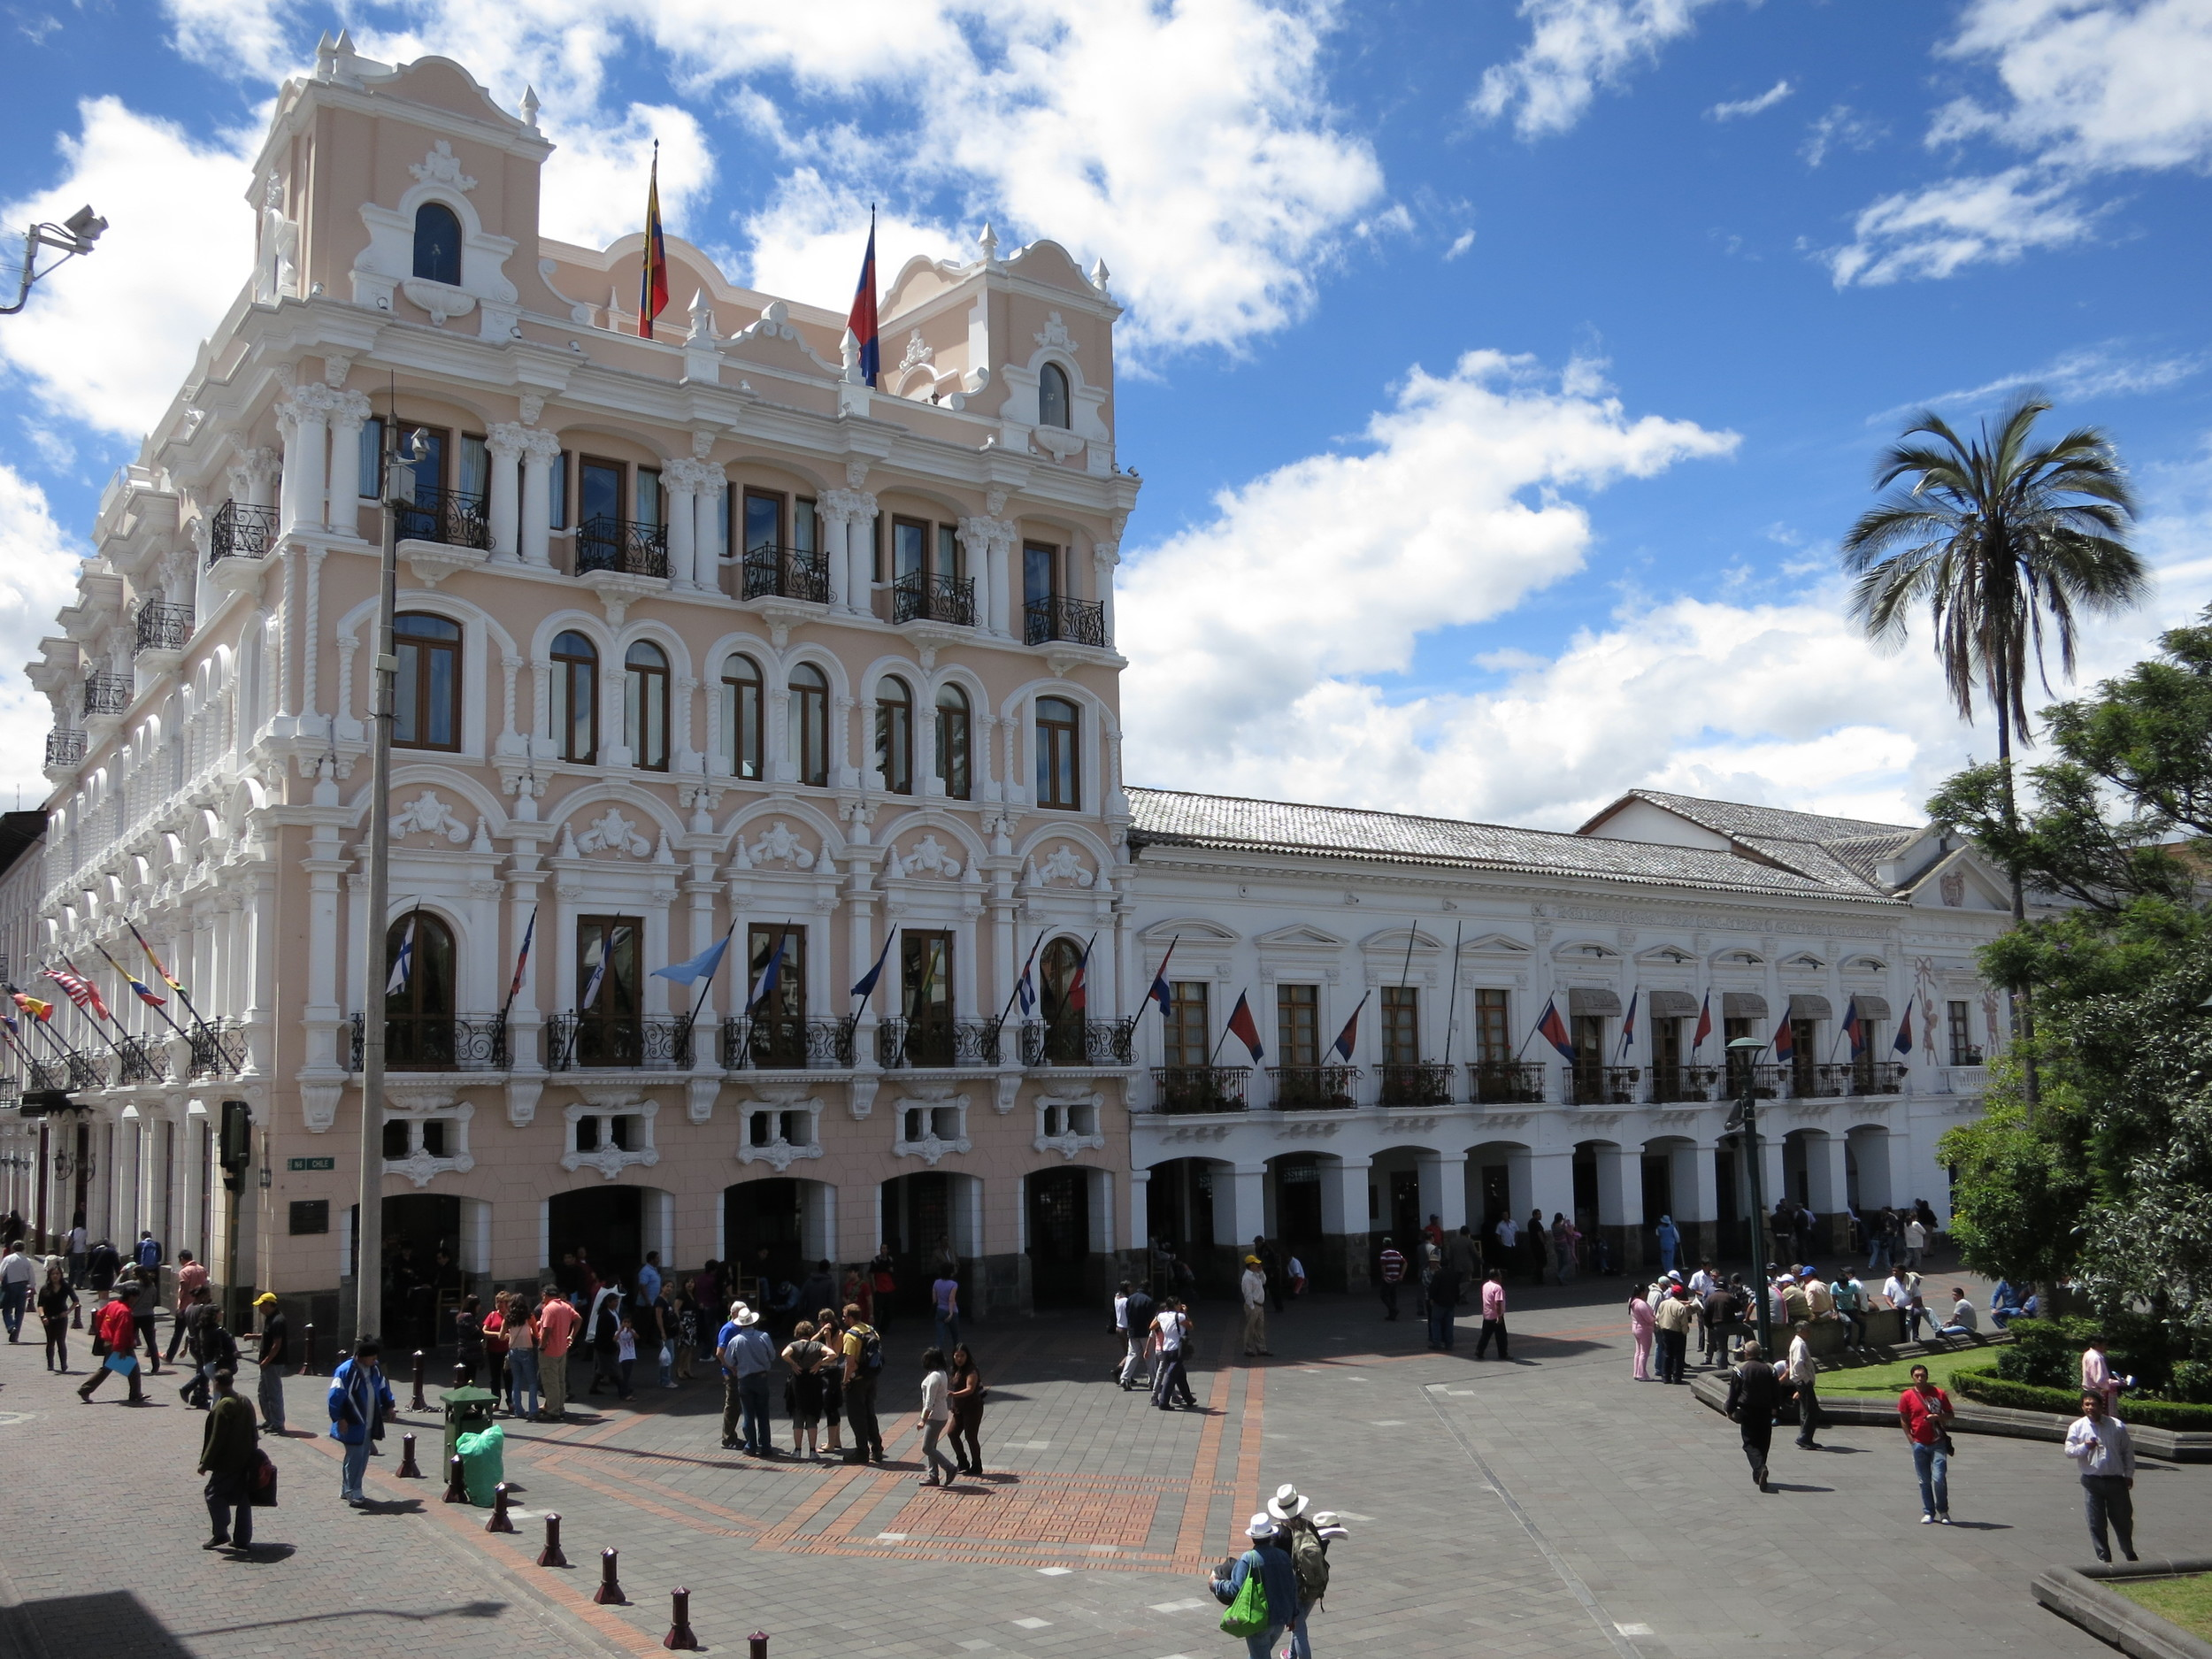 Quito-Ecuador-and-Surrounmding-Areas-362.jpg